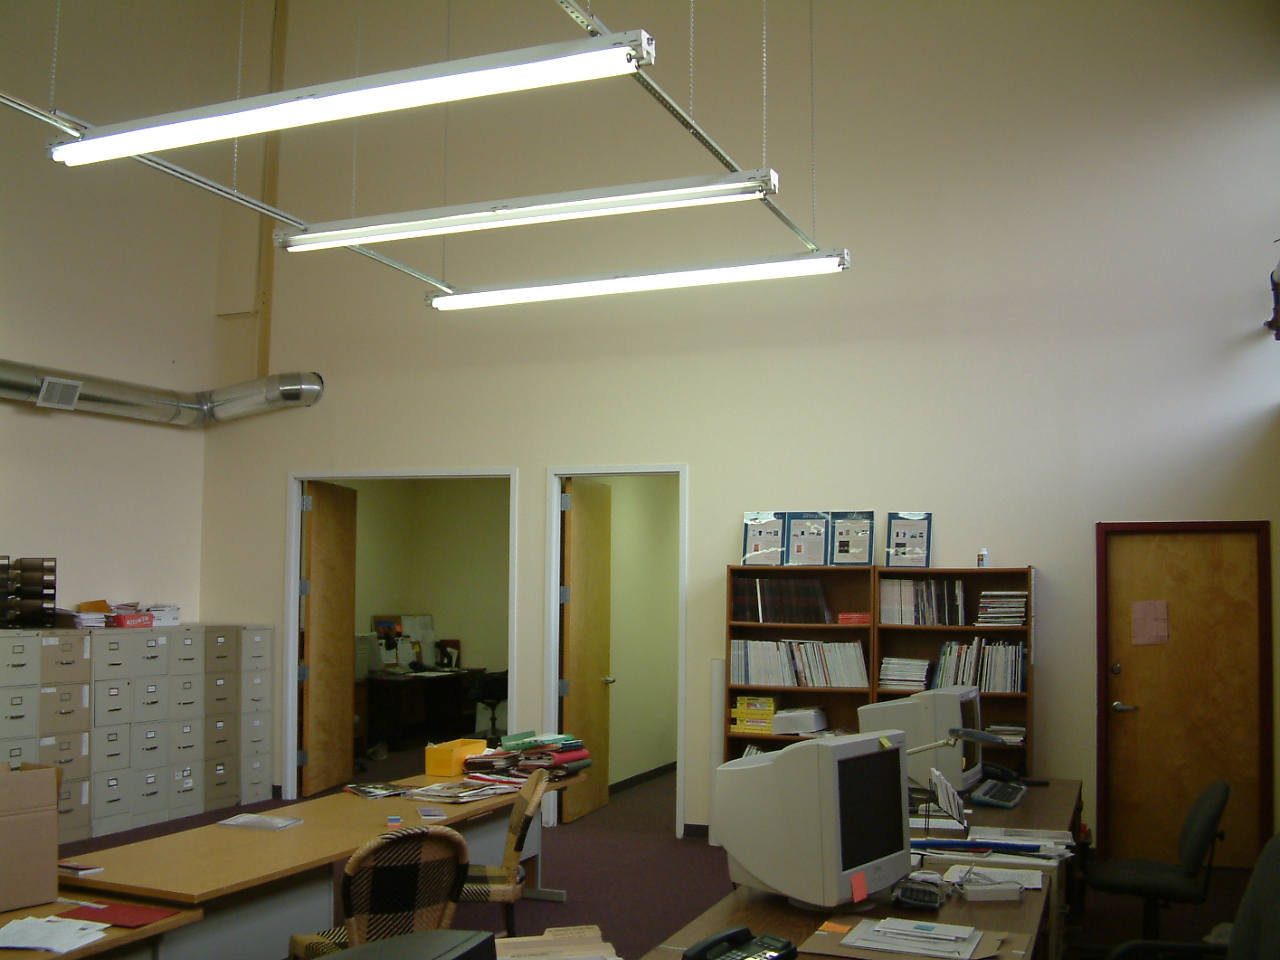 Electrical Contracting Residential Commercial And Industrial Wiring Flouresent Lights These Are Fluorescent That Mounted To A Frame Suspended From The Ceiling Popular Lighting Method For Spaces With Very High